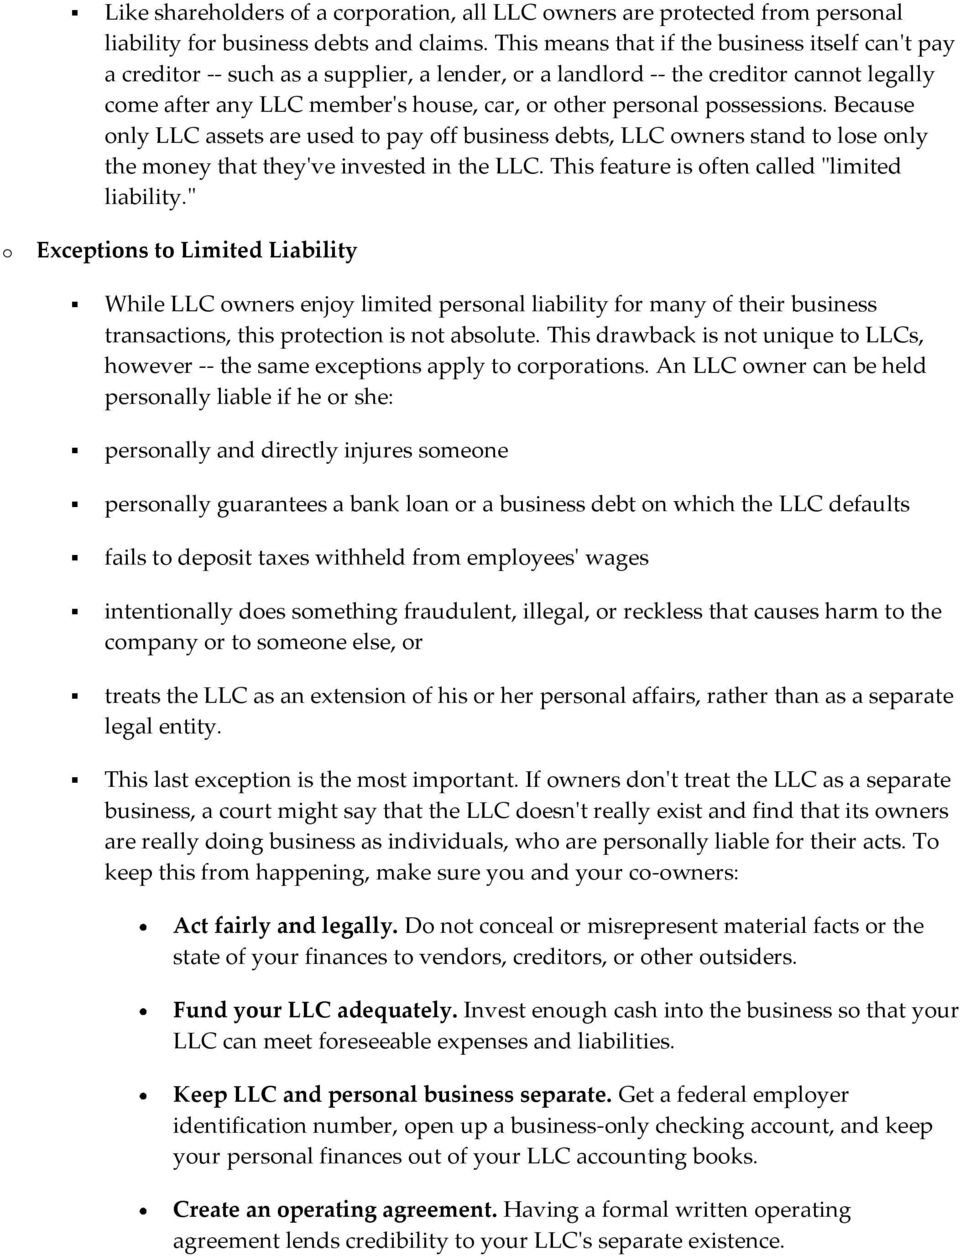 "Because nly LLC assets are used t pay ff business debts, LLC wners stand t lse nly the mney that they've invested in the LLC. This feature is ften called ""limited liability."